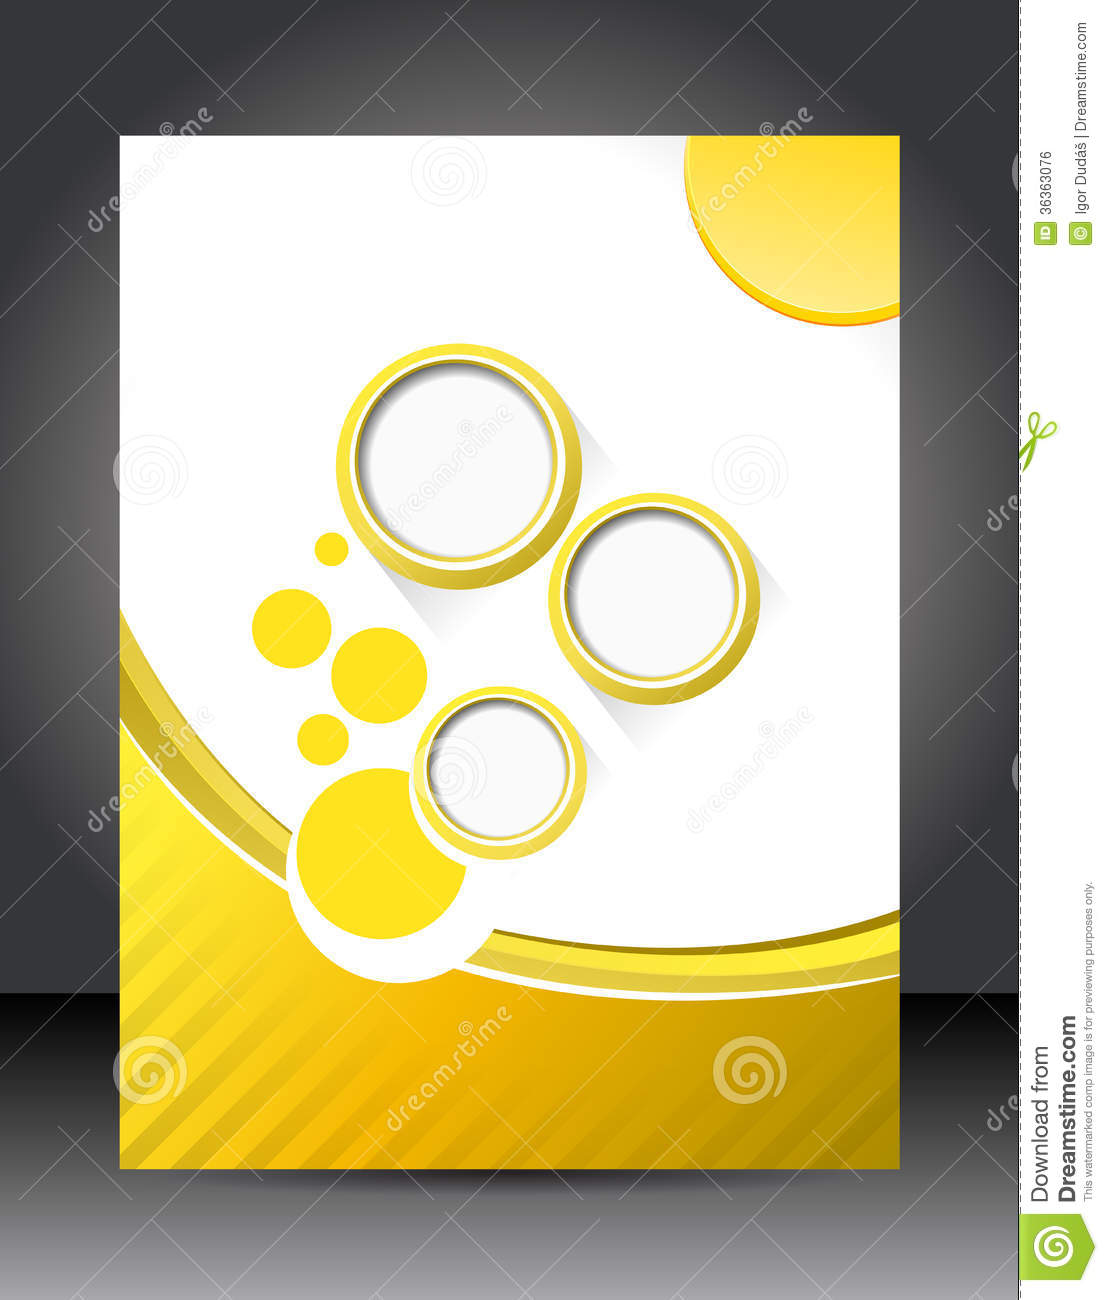 Design Layout Template Royalty Free Image Image 36363076 – Template Poster Free